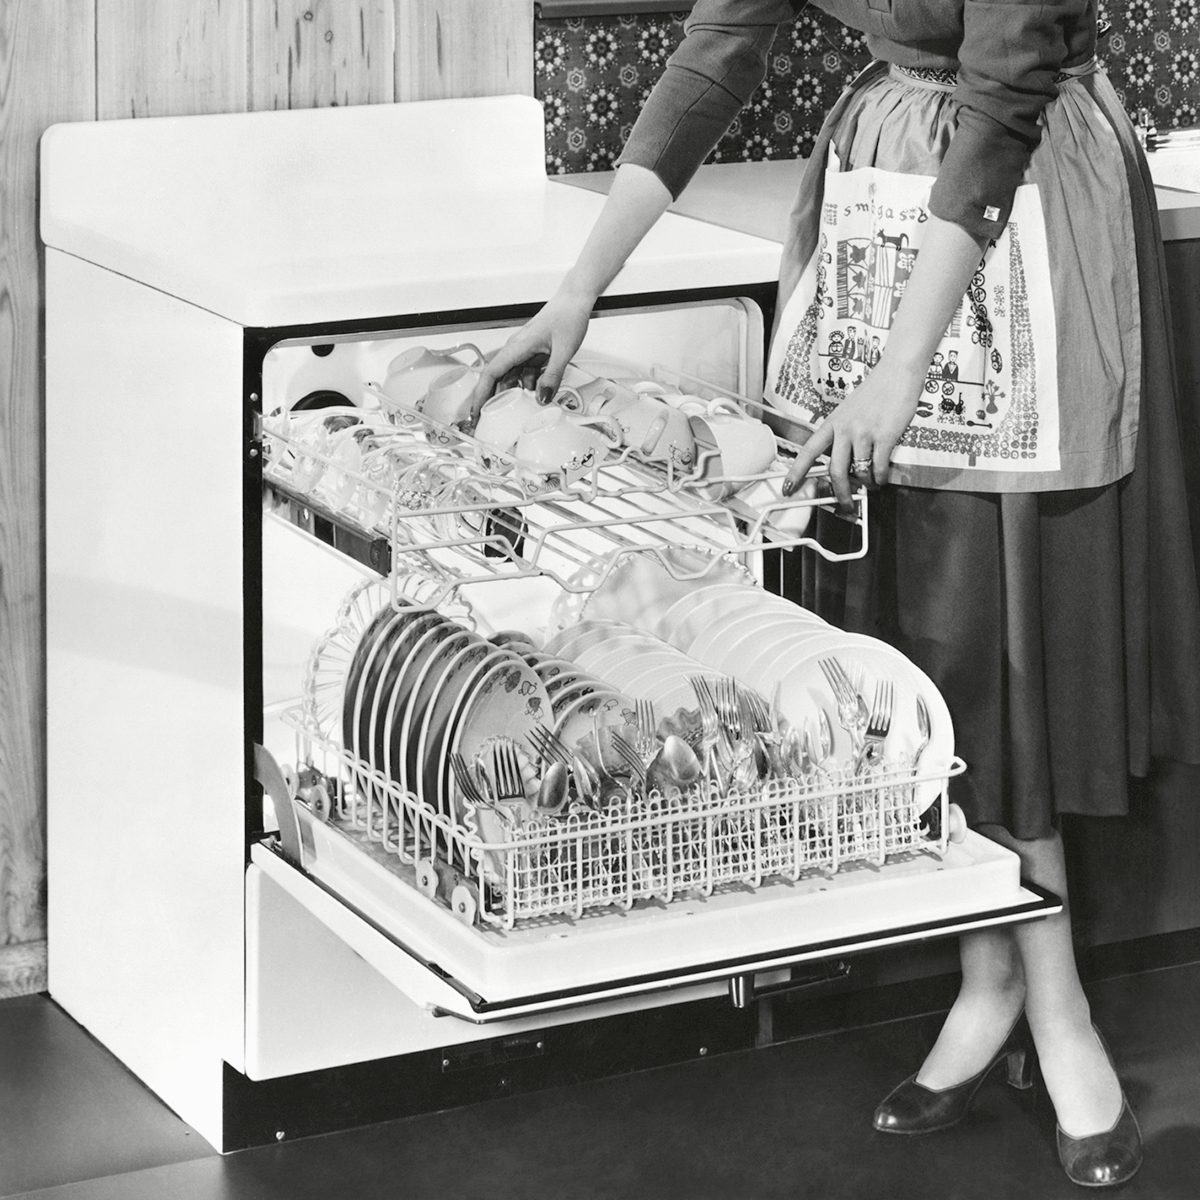 Mandatory Credit: Photo by Everett/Shutterstock (10307179a) An automatic dishwasher was one of the first of the appliances to be made by Frigidaire. Dec. 1954. Historical Collection